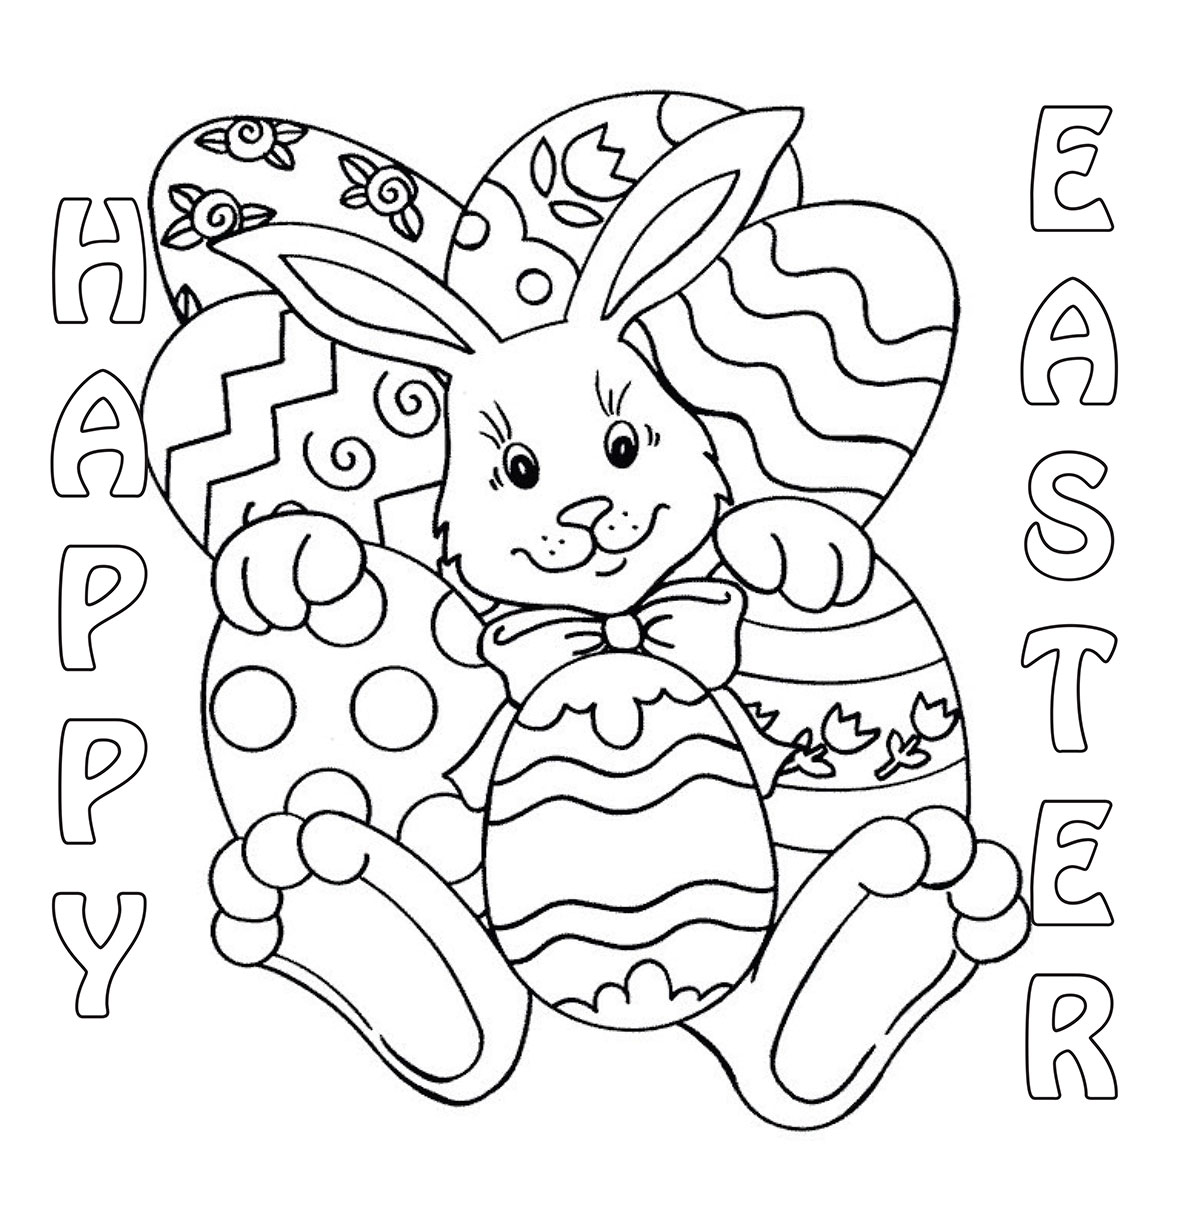 coloring pages easter - photo#4